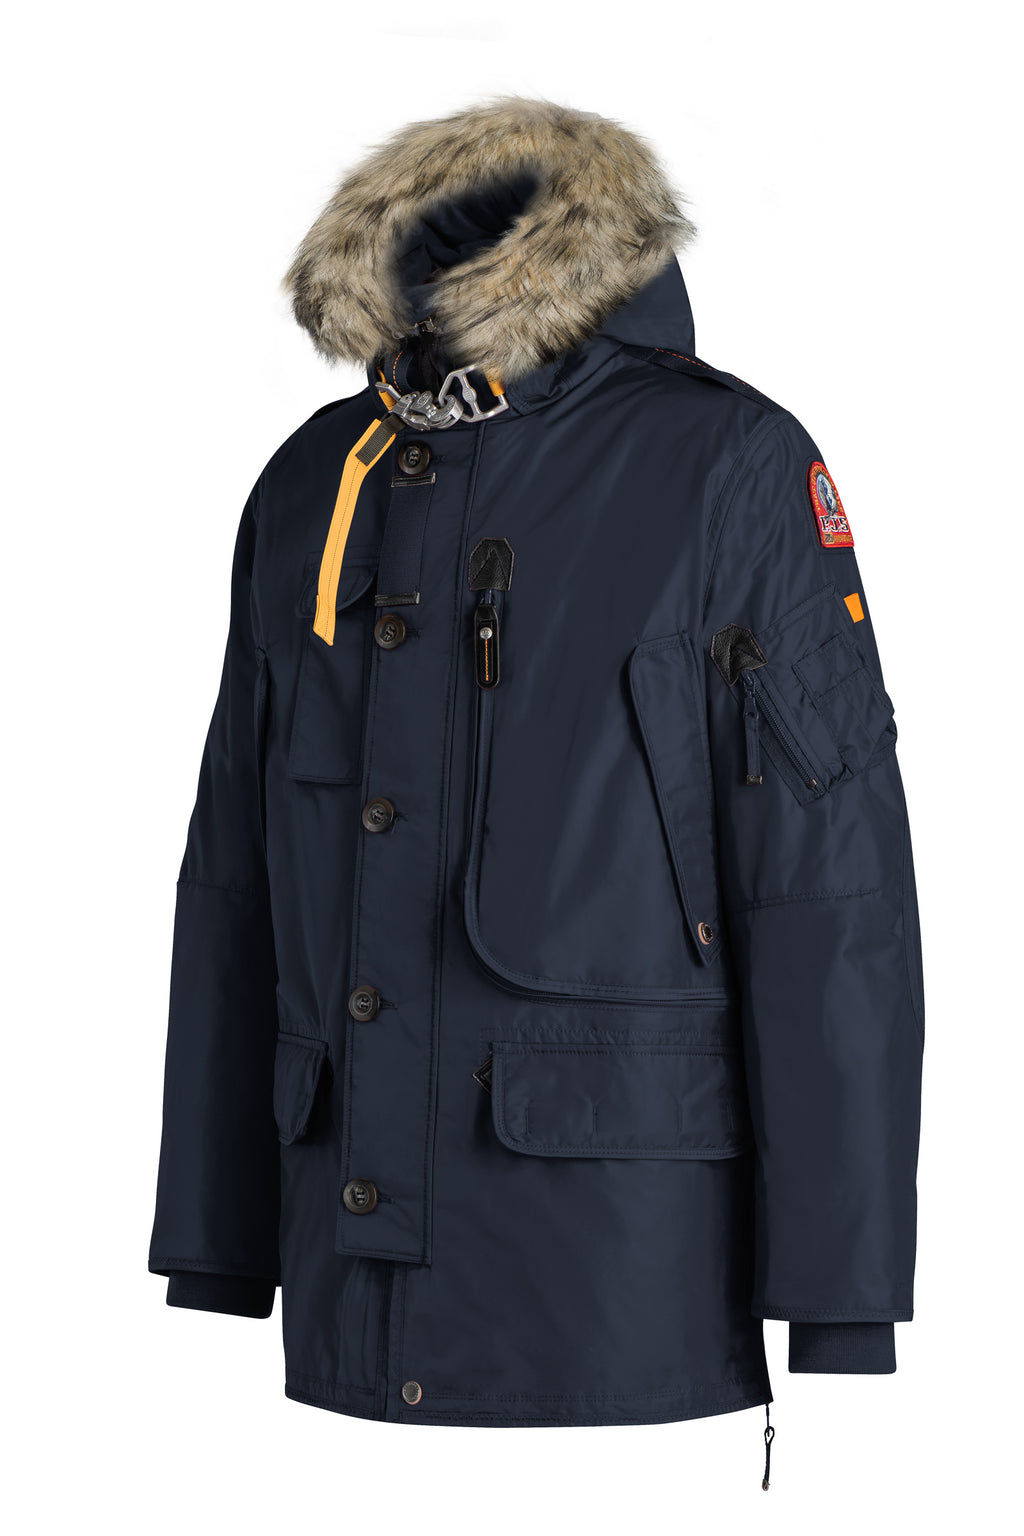 Parajumpers Kodiak Parka in Navy